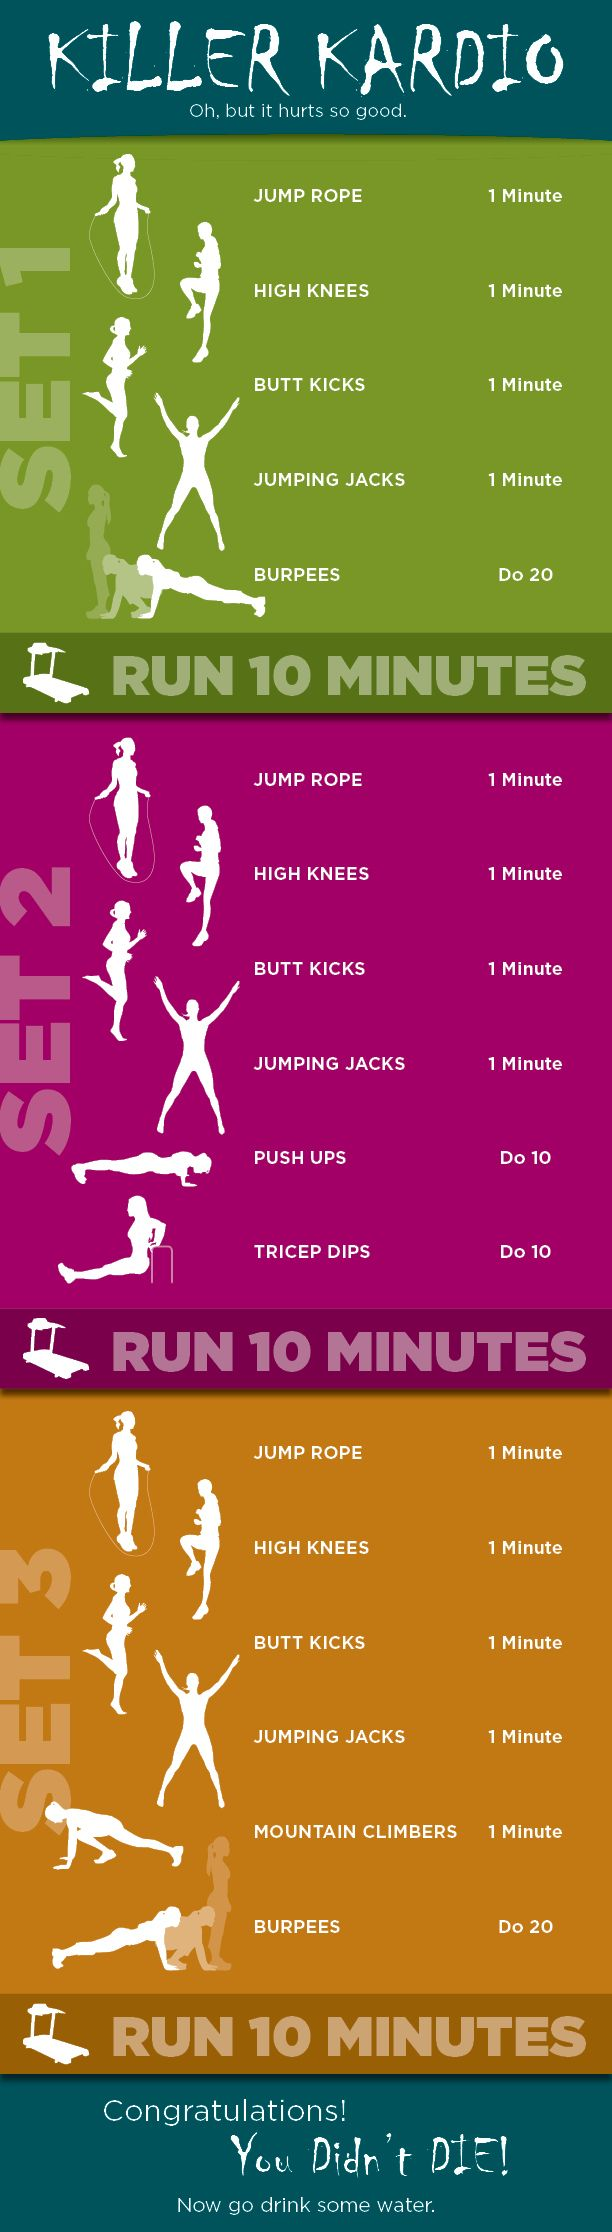 Cardio workout: Cardio Workouts, Killers Cardio, Work Outs, Fitnesss, Fun Workout, Killers Kardio, Fitness Workout, At Home Workout, Good Workout